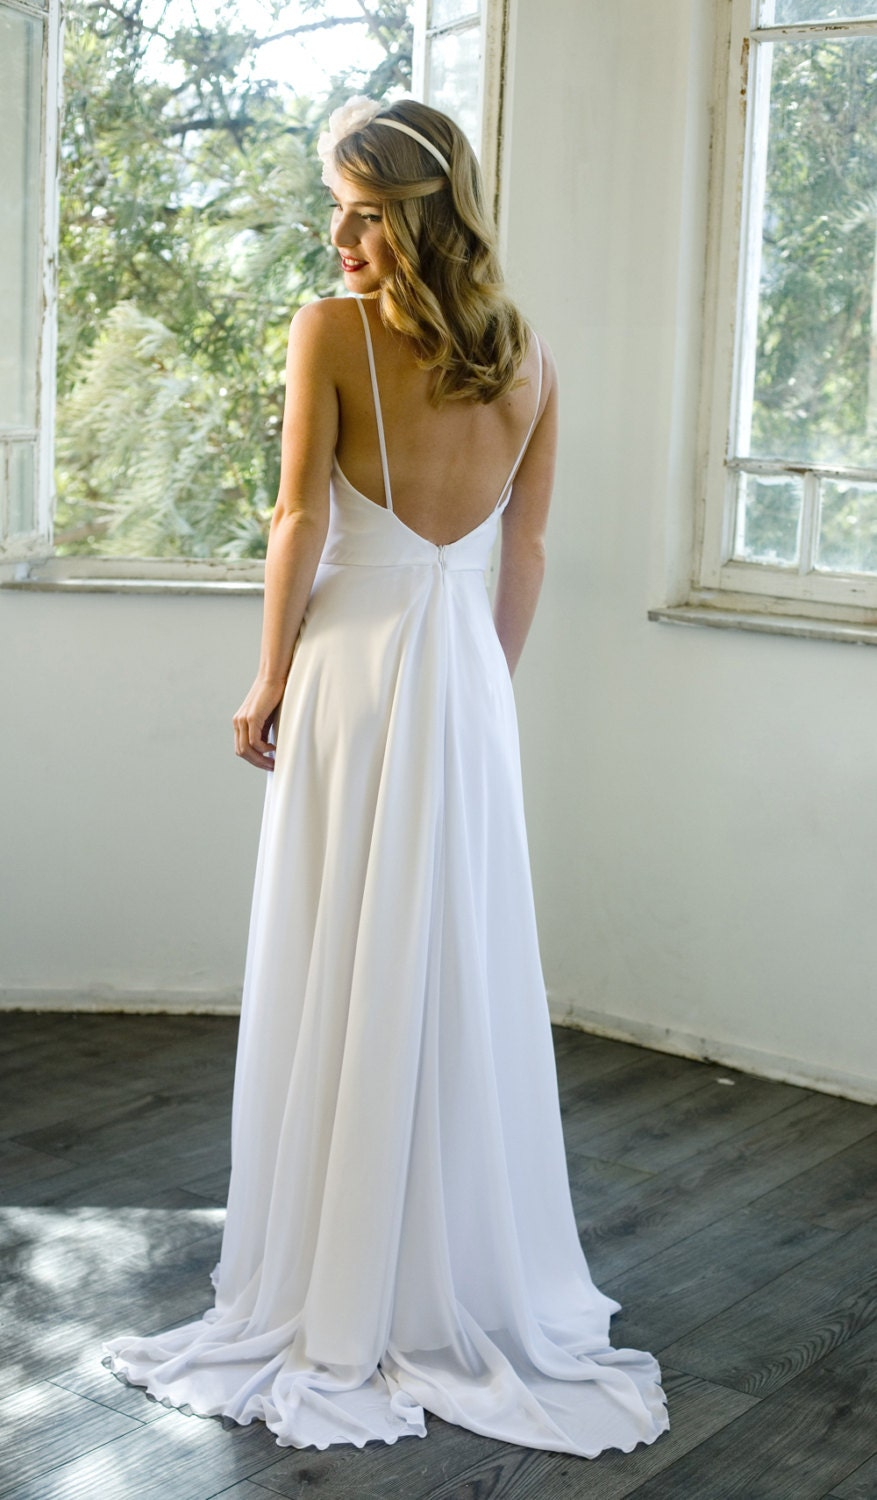 Romantic white chiffon beach wedding dress low back wedding for Beach chiffon wedding dress